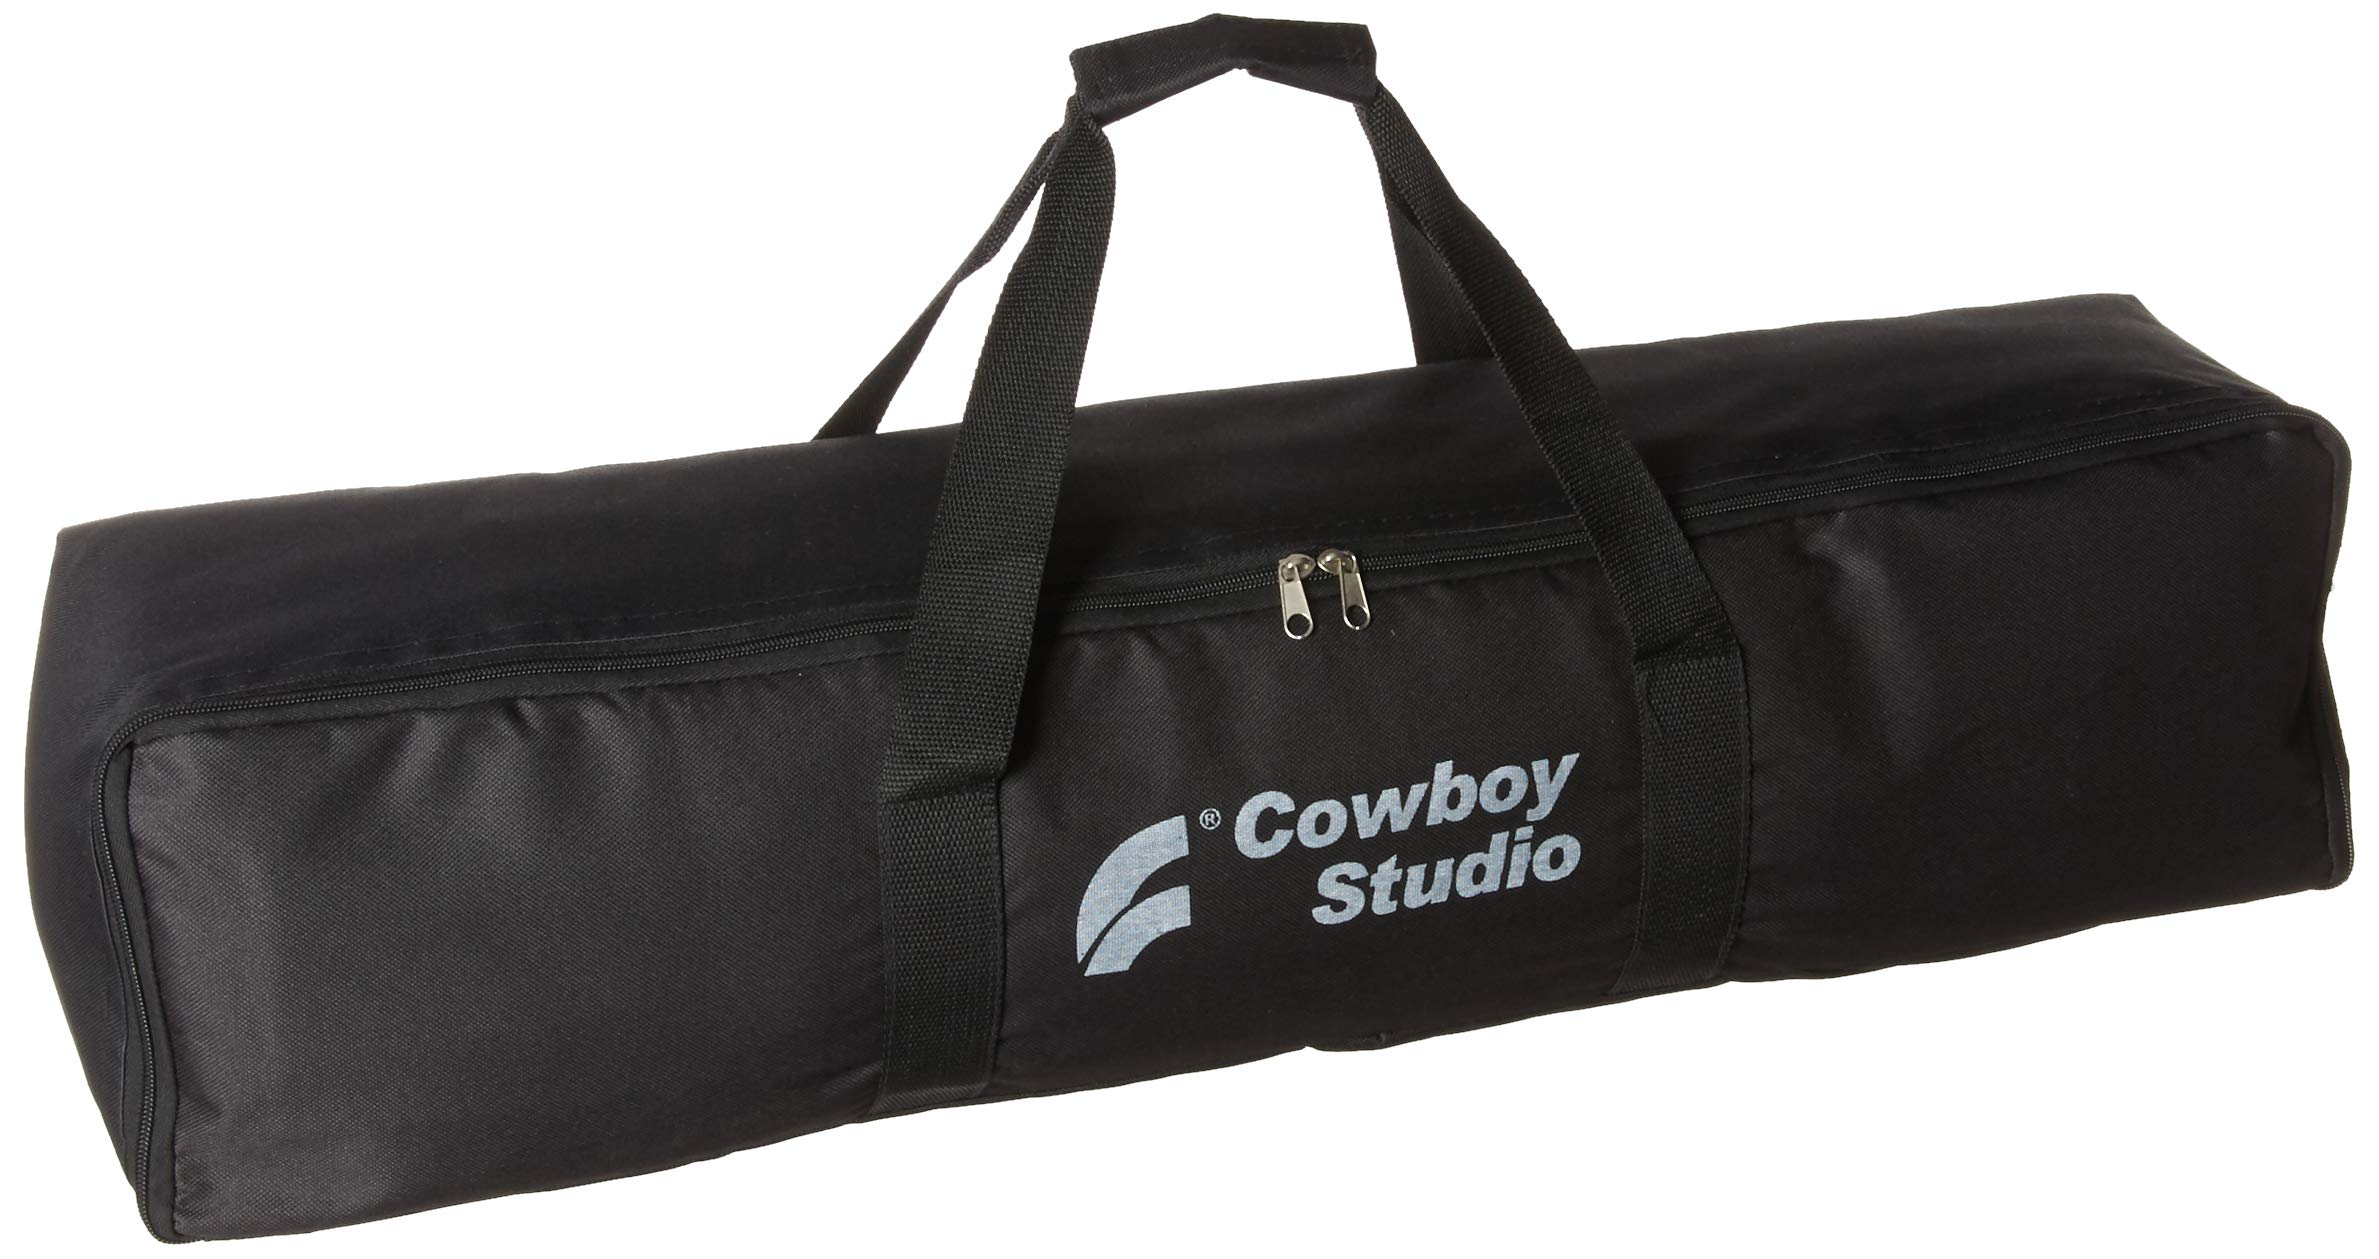 CowboyStudio Photography Equipment Zipper Bag for Light Stands, Umbrellas, and Accessories